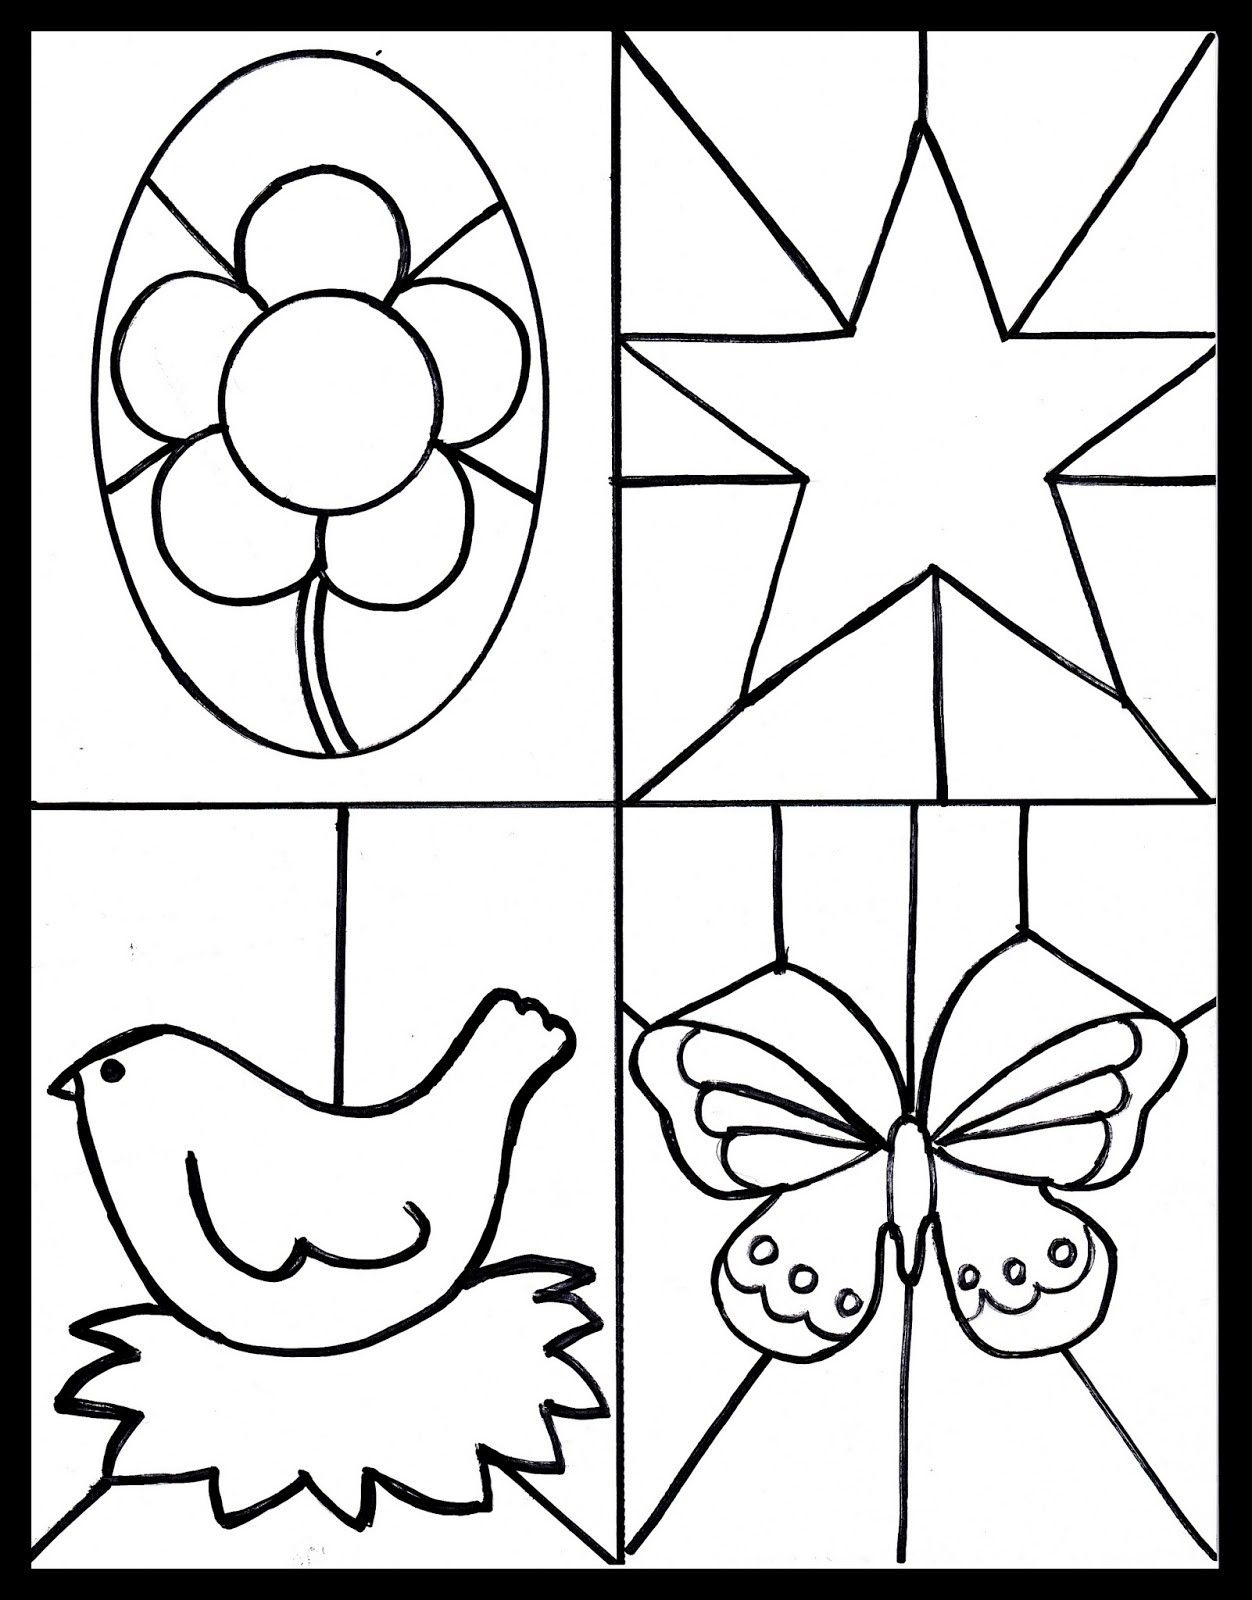 Use This Free Printable With Some Crayons Colored Pencils Or Markers To Create Cute Stained Glass Images For Your Windows